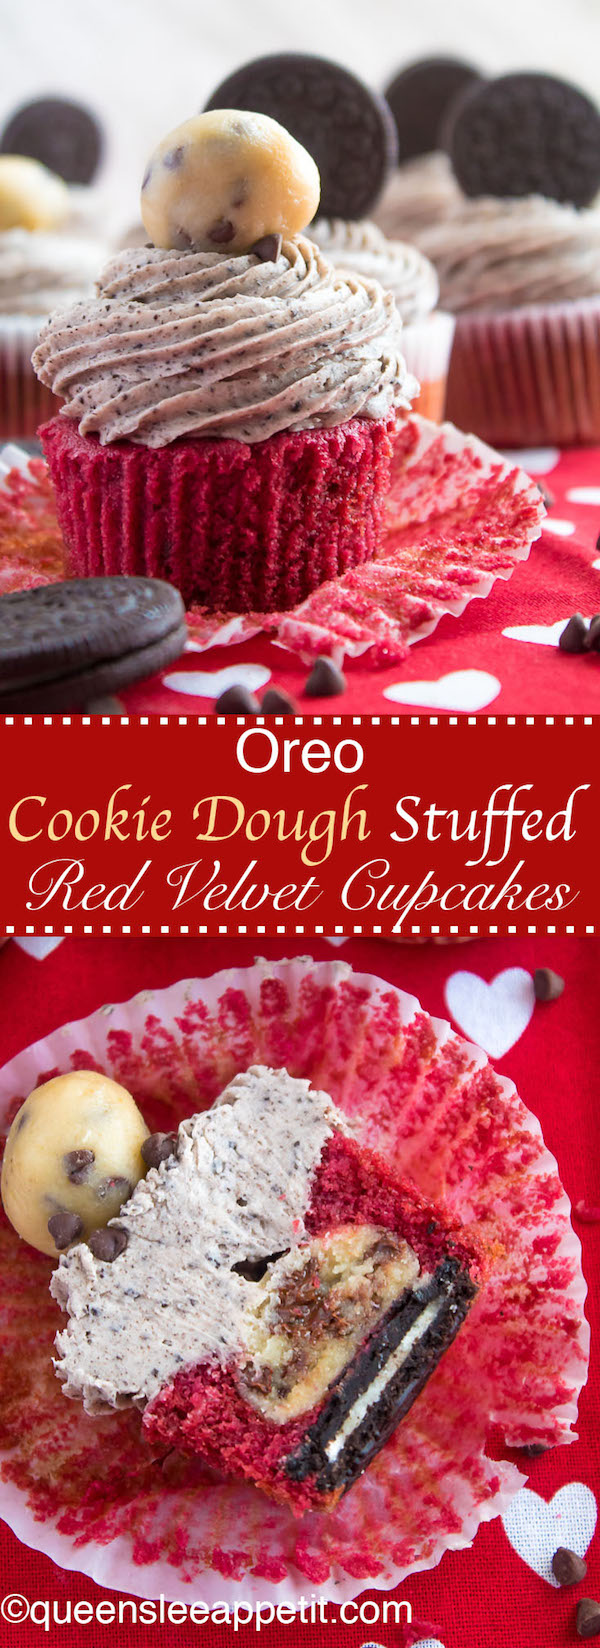 These Oreo Cookie Dough Stuffed Red Velvet Cupcakes are insanely delicious! A moist and fluffy red velvet cupcake with an Oreo bottom and cookie dough filling. Topped with an Oreo Cream Cheese Frosting, these cupcakes are dressed to impress!